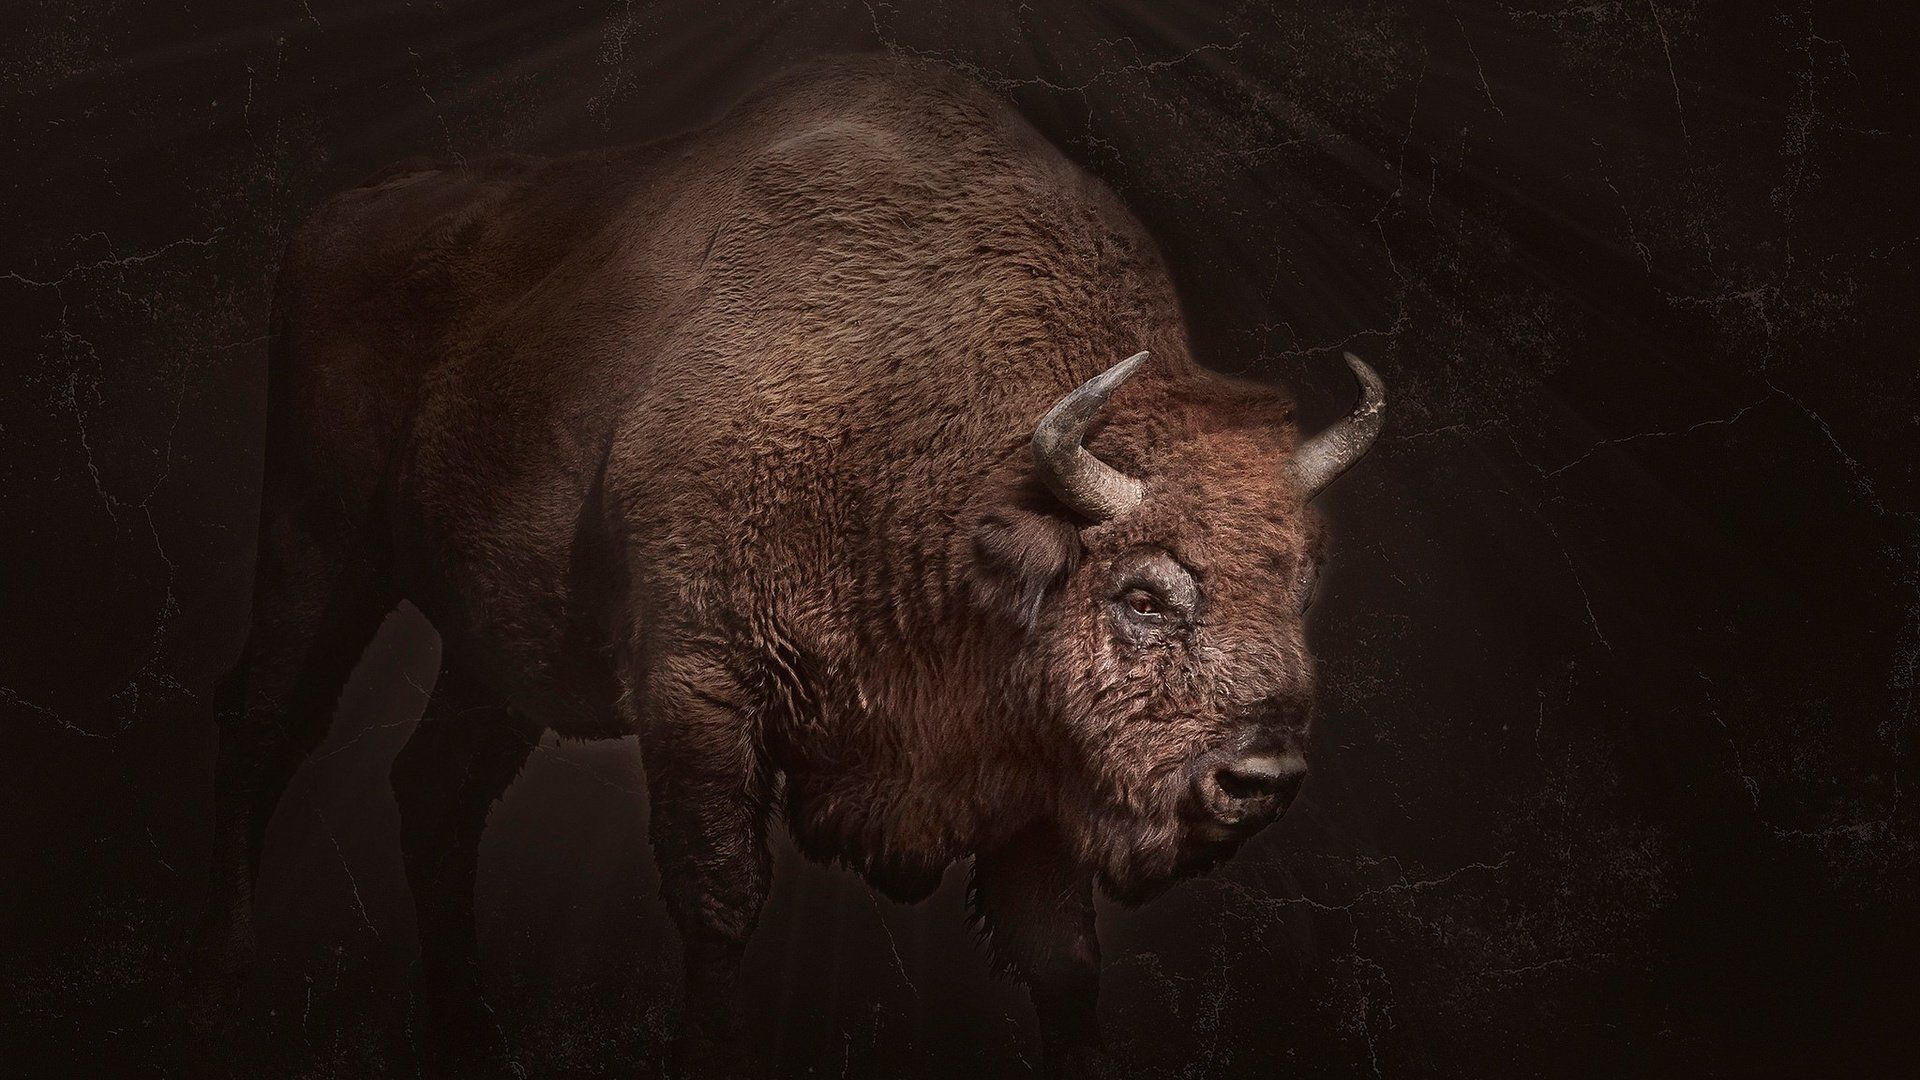 Bison Hd Photo